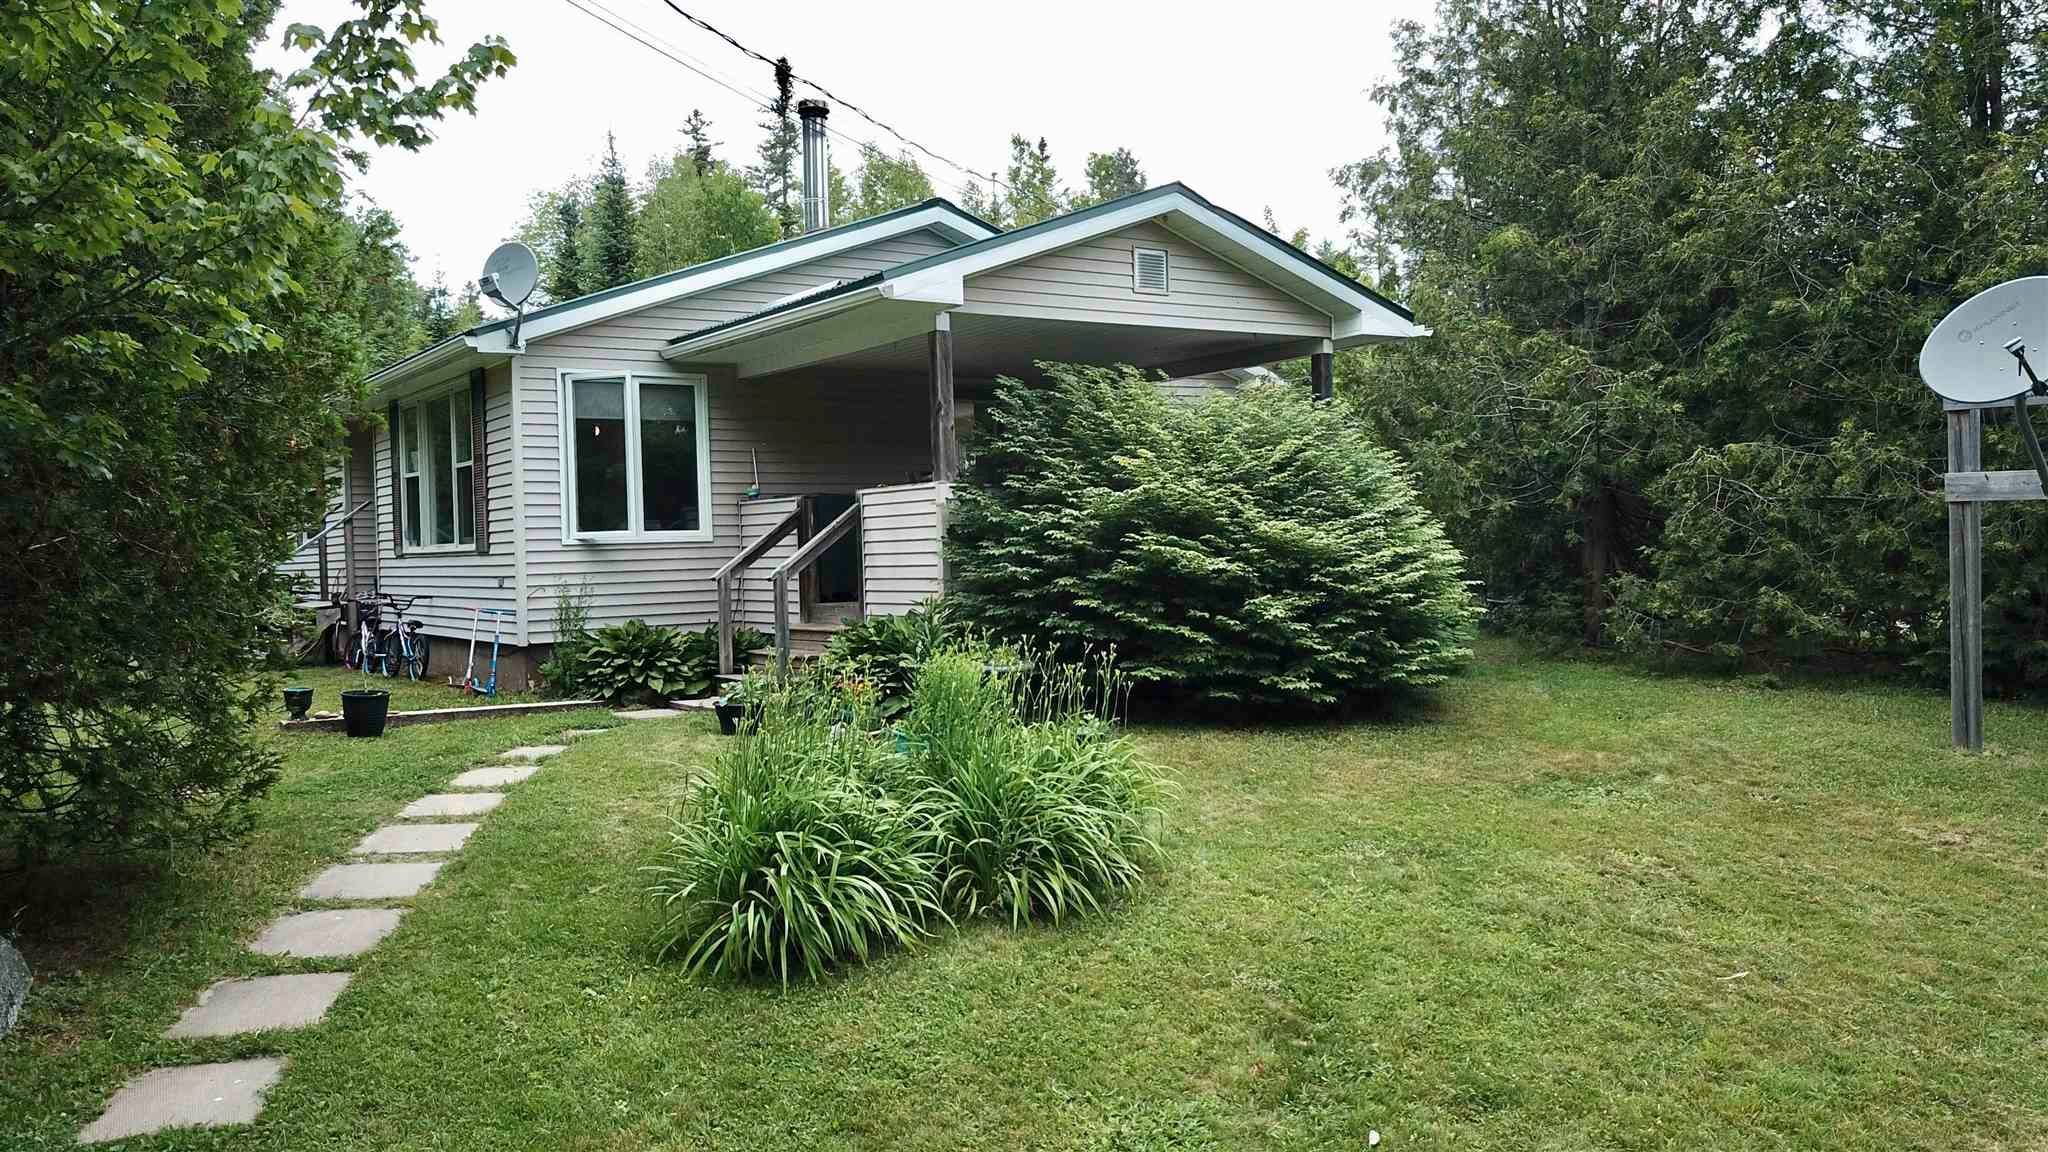 Main Photo: 2160 Black River Road in Wolfville: 404-Kings County Residential for sale (Annapolis Valley)  : MLS®# 202116965